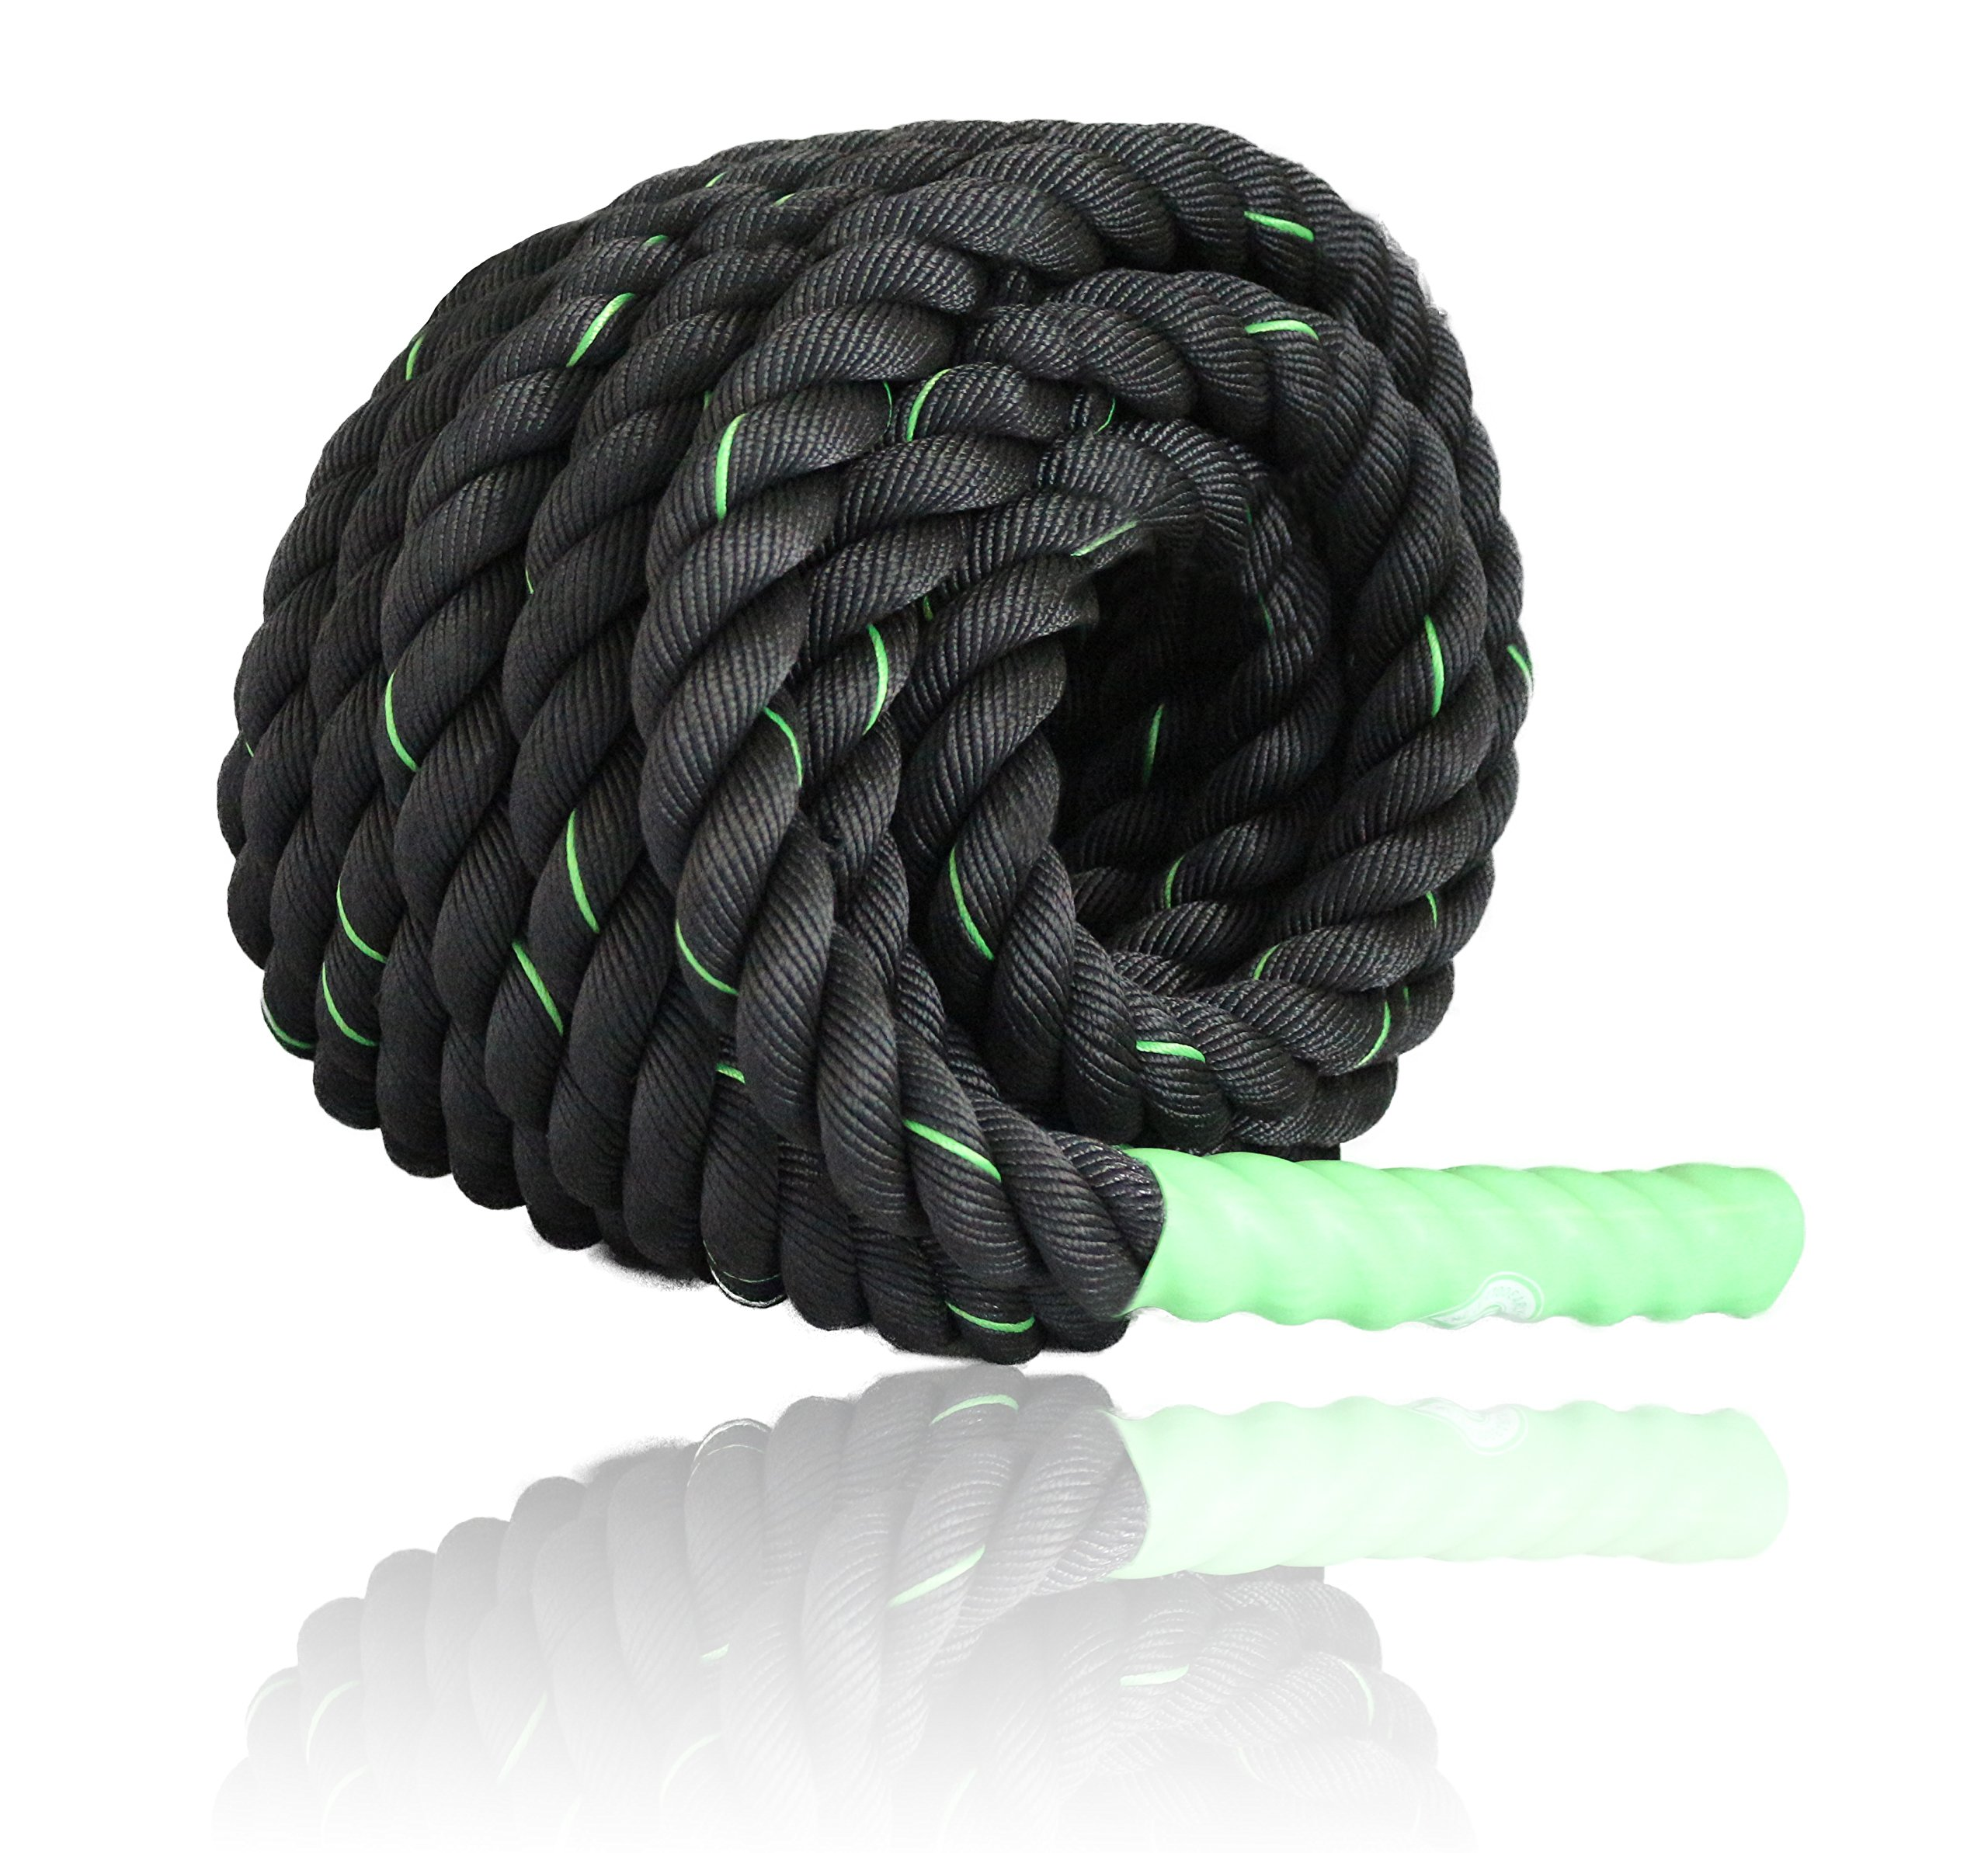 Battle Ropes Fitness | Cardio Exercise Rope Training | Best Gym Workout for Home - 40' feet x 1.5'' inch - Green by Fitness Answered Training (Image #5)